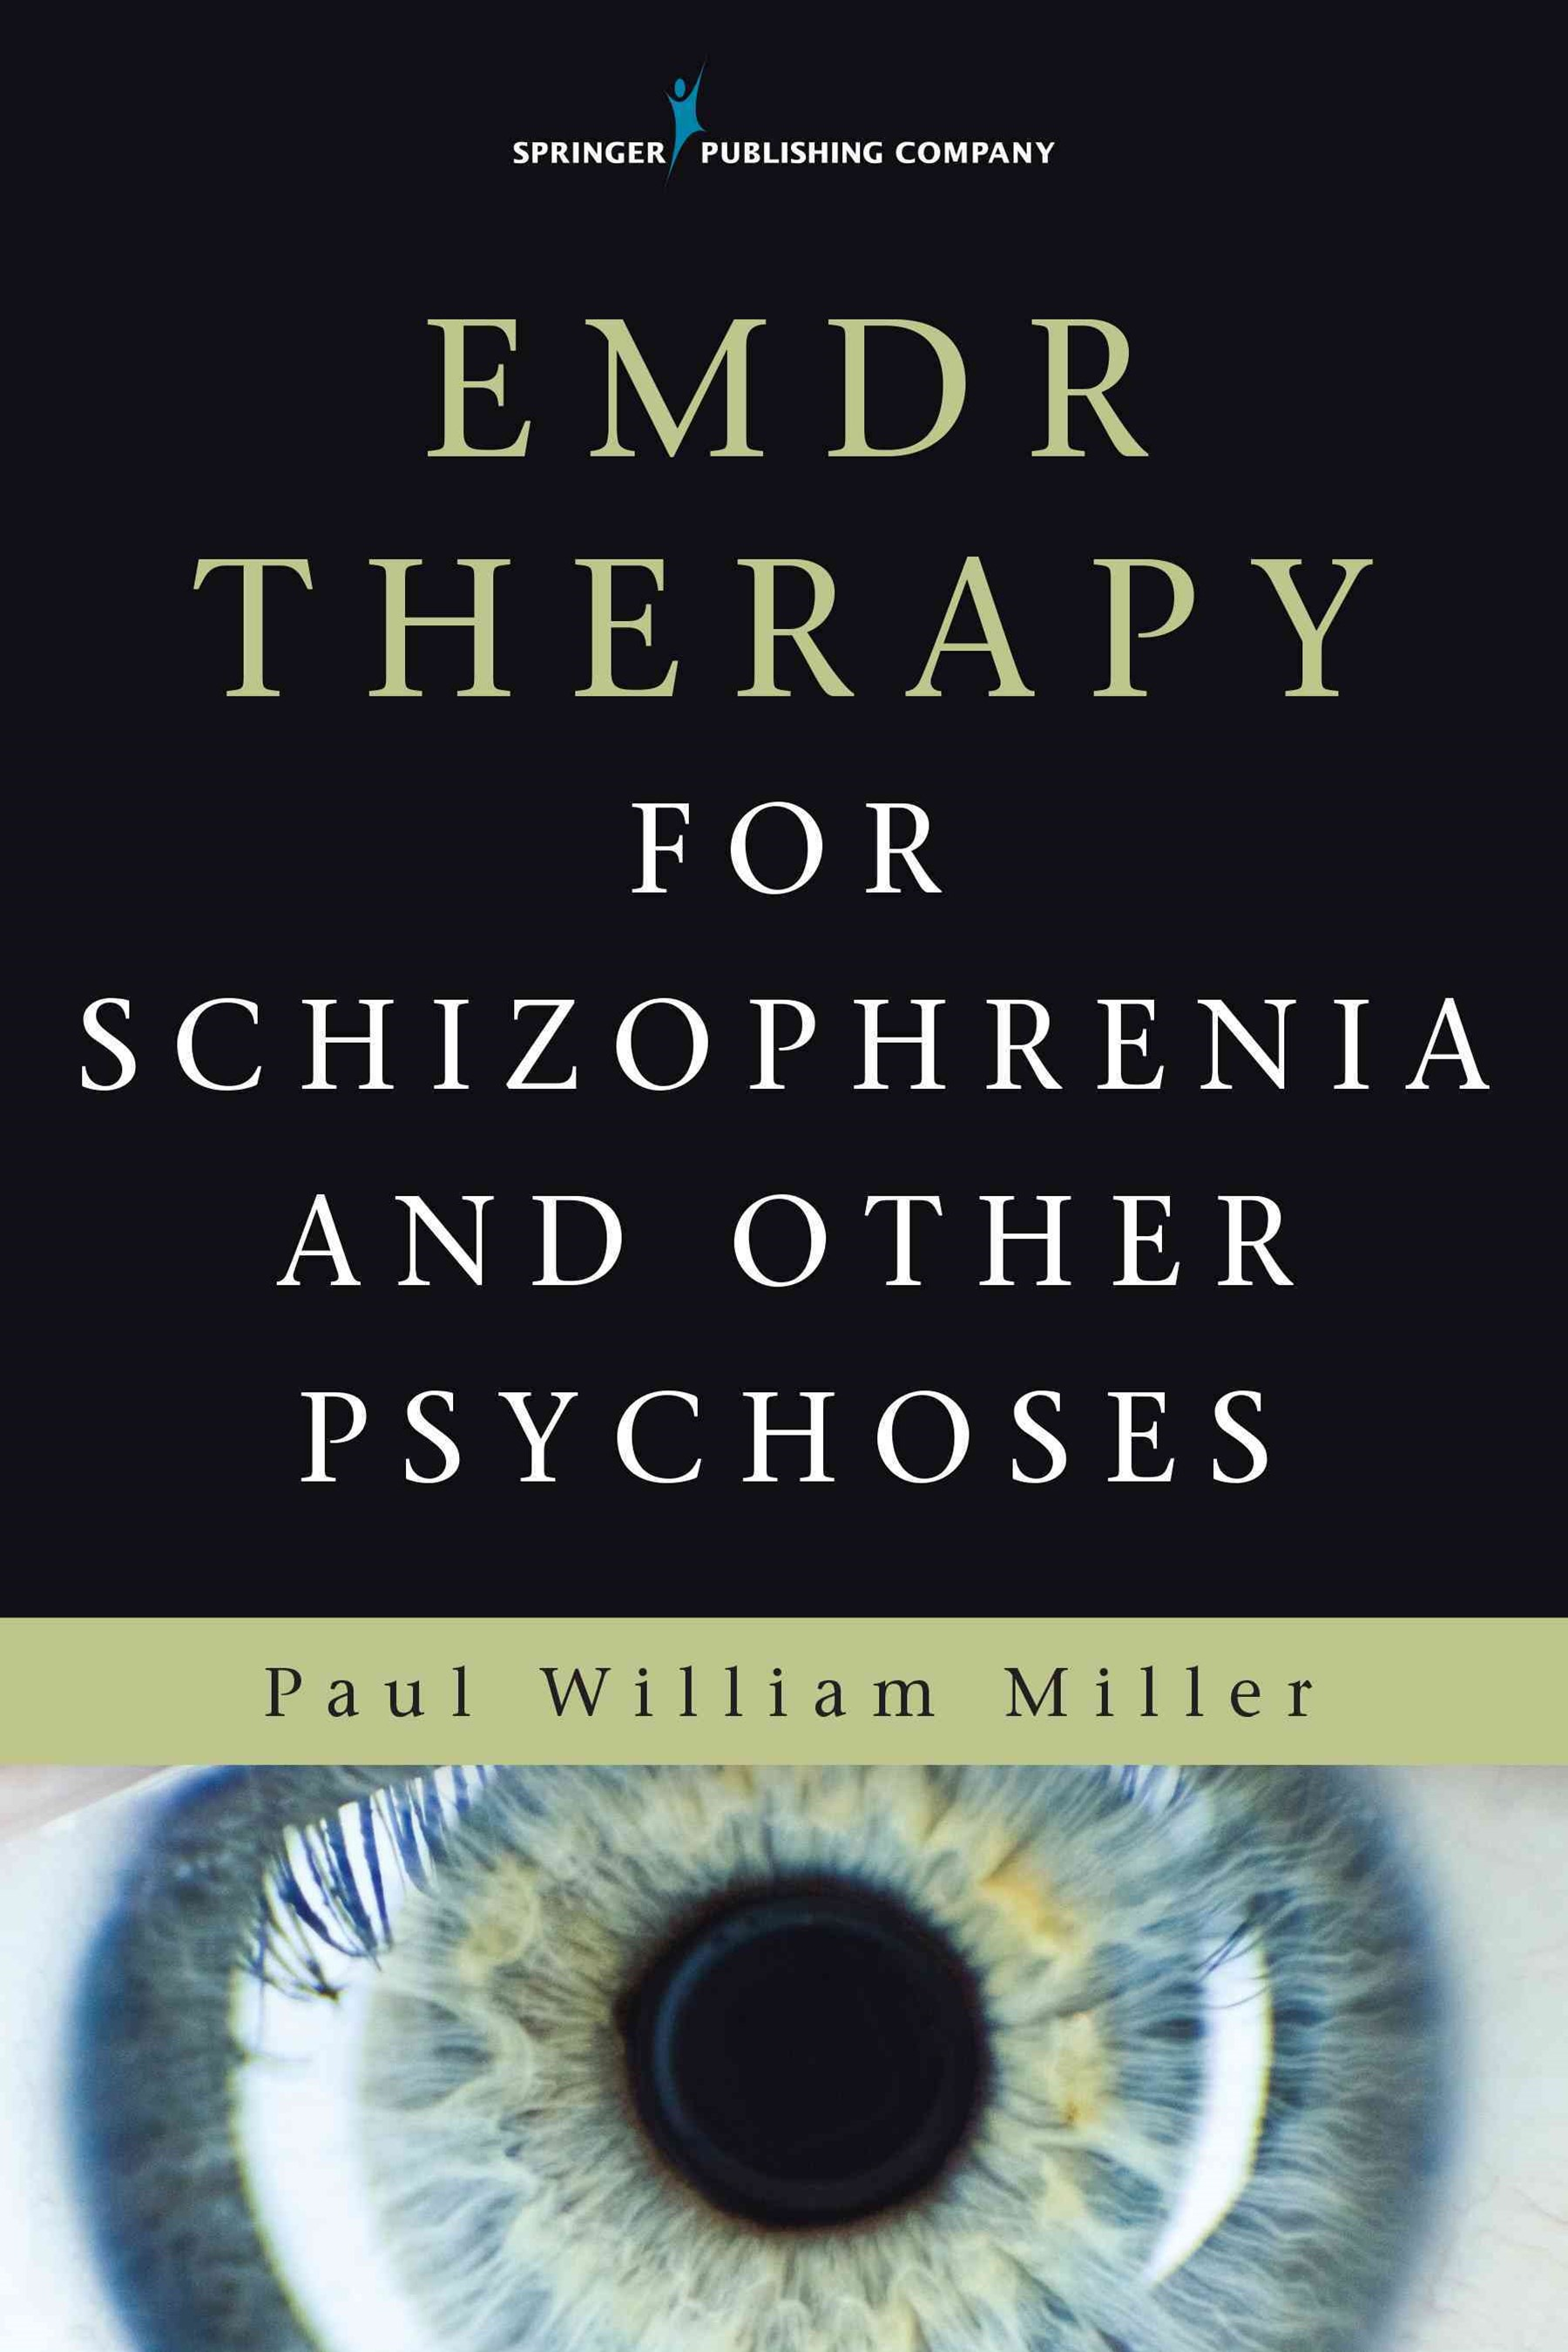 Emdr for Schizophrenia and Other Psychoses